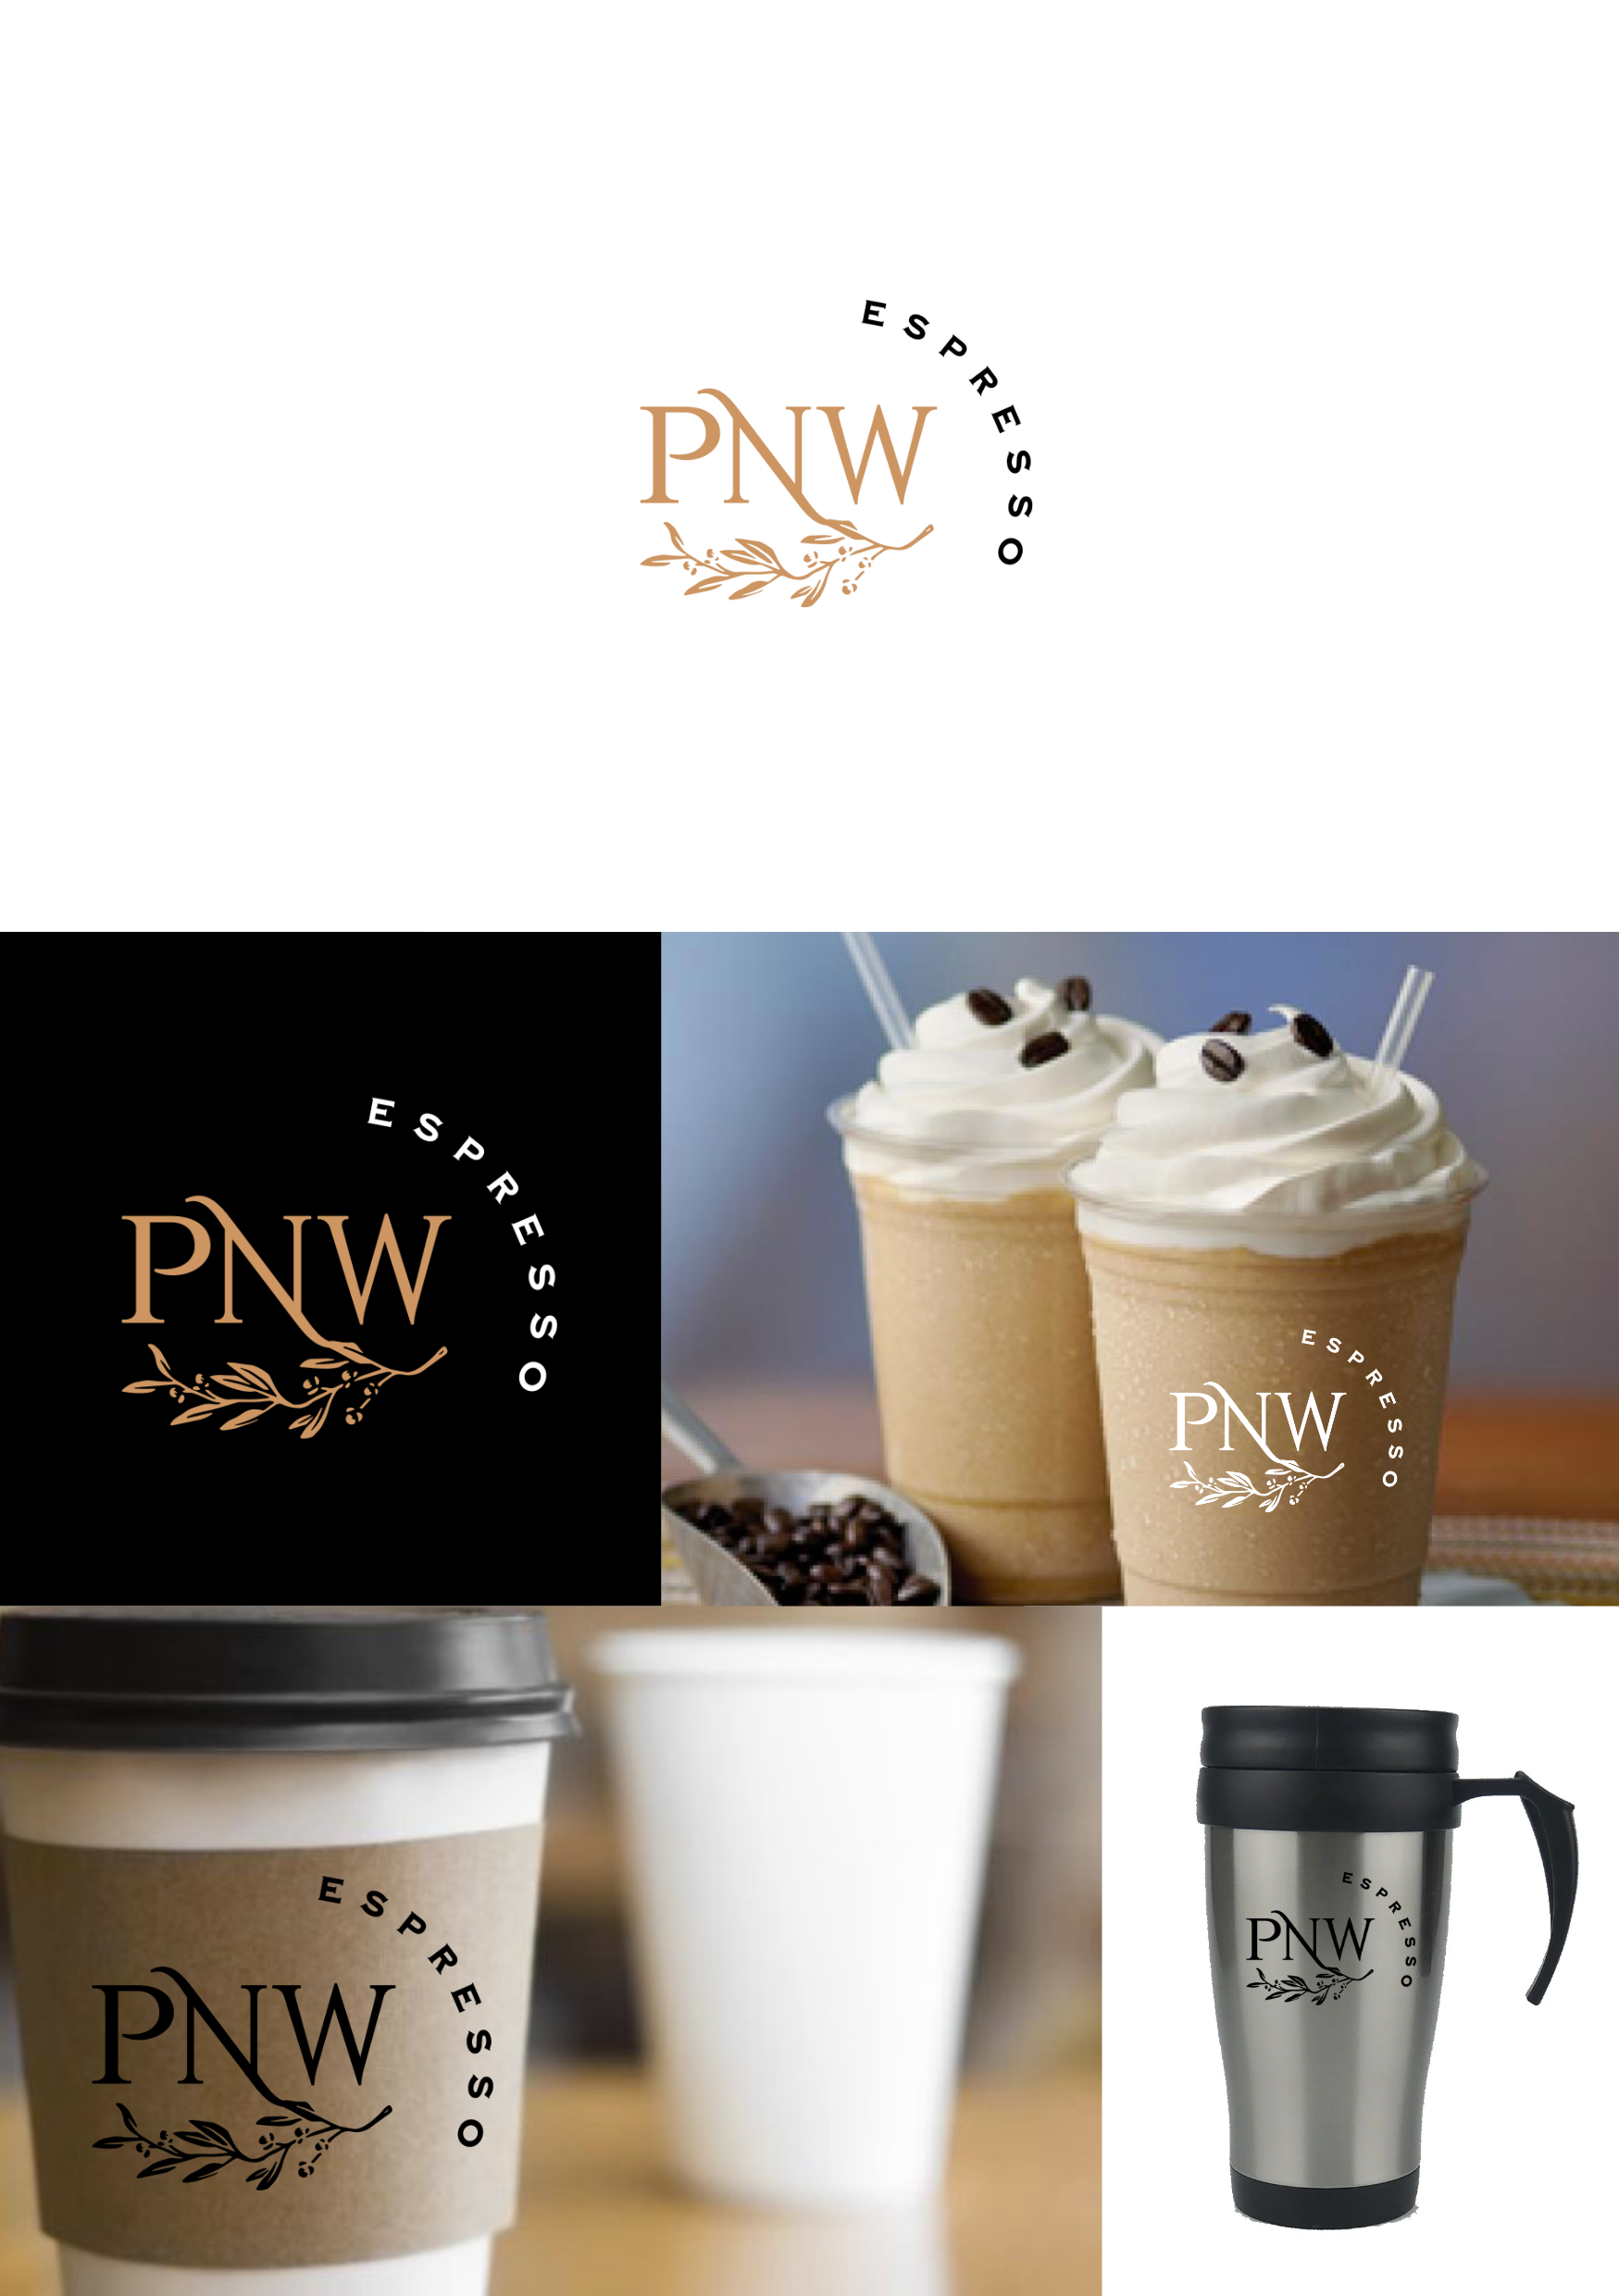 PNW Espresso 2.0 - Please help me with a logo that will look great on our coffee cups!!!